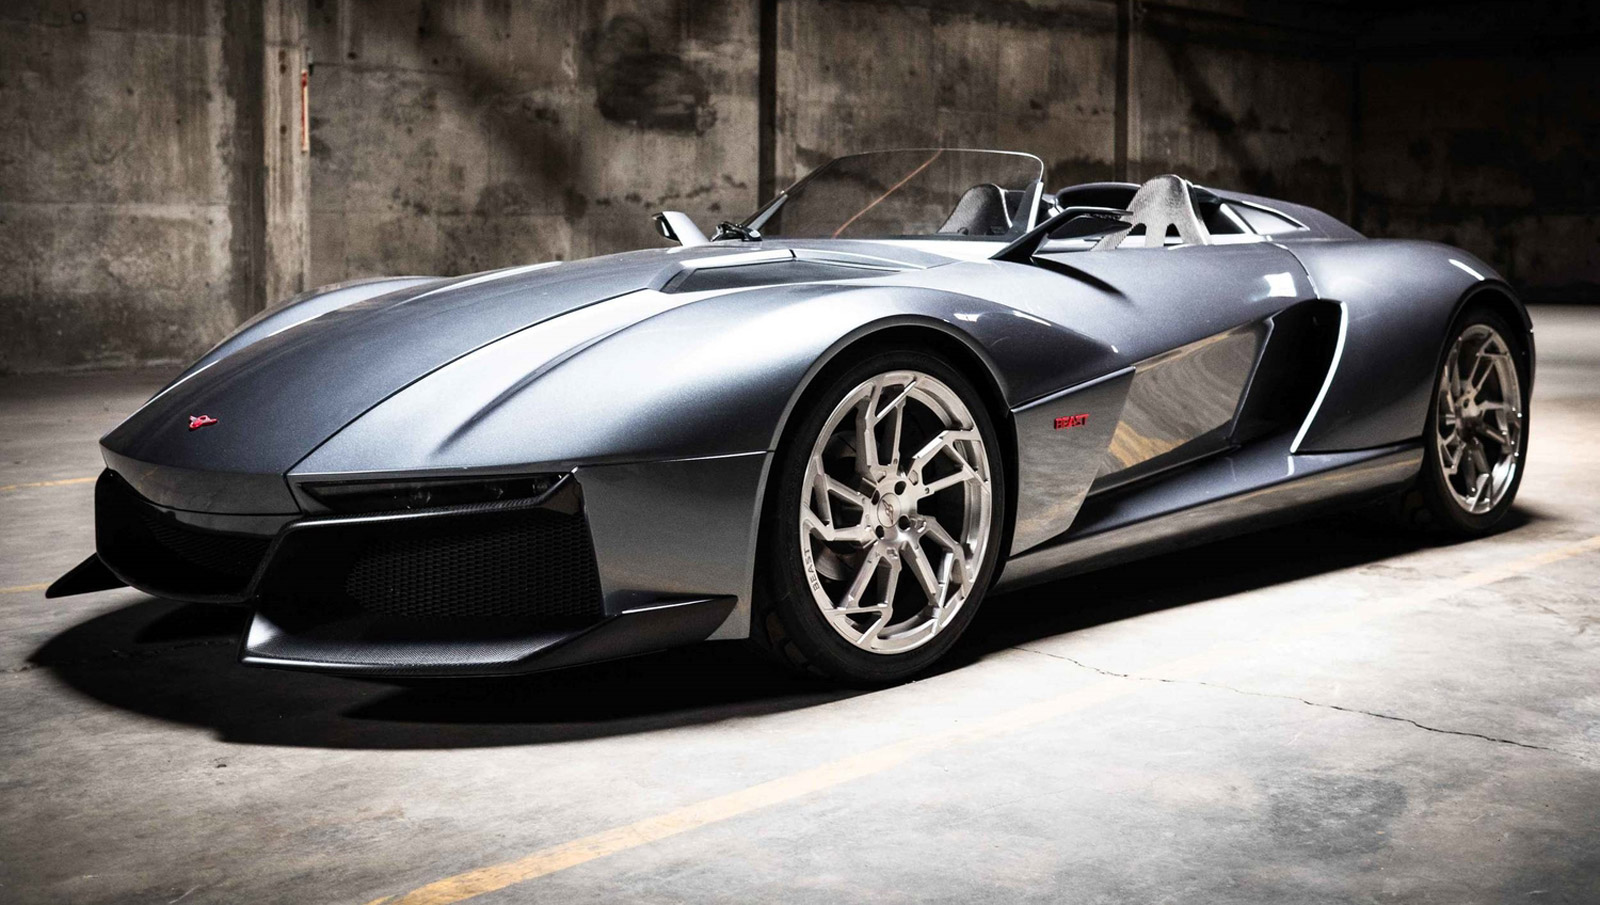 Chris Brown First To Take Delivery Of 500-HP Rezvani Beast ...